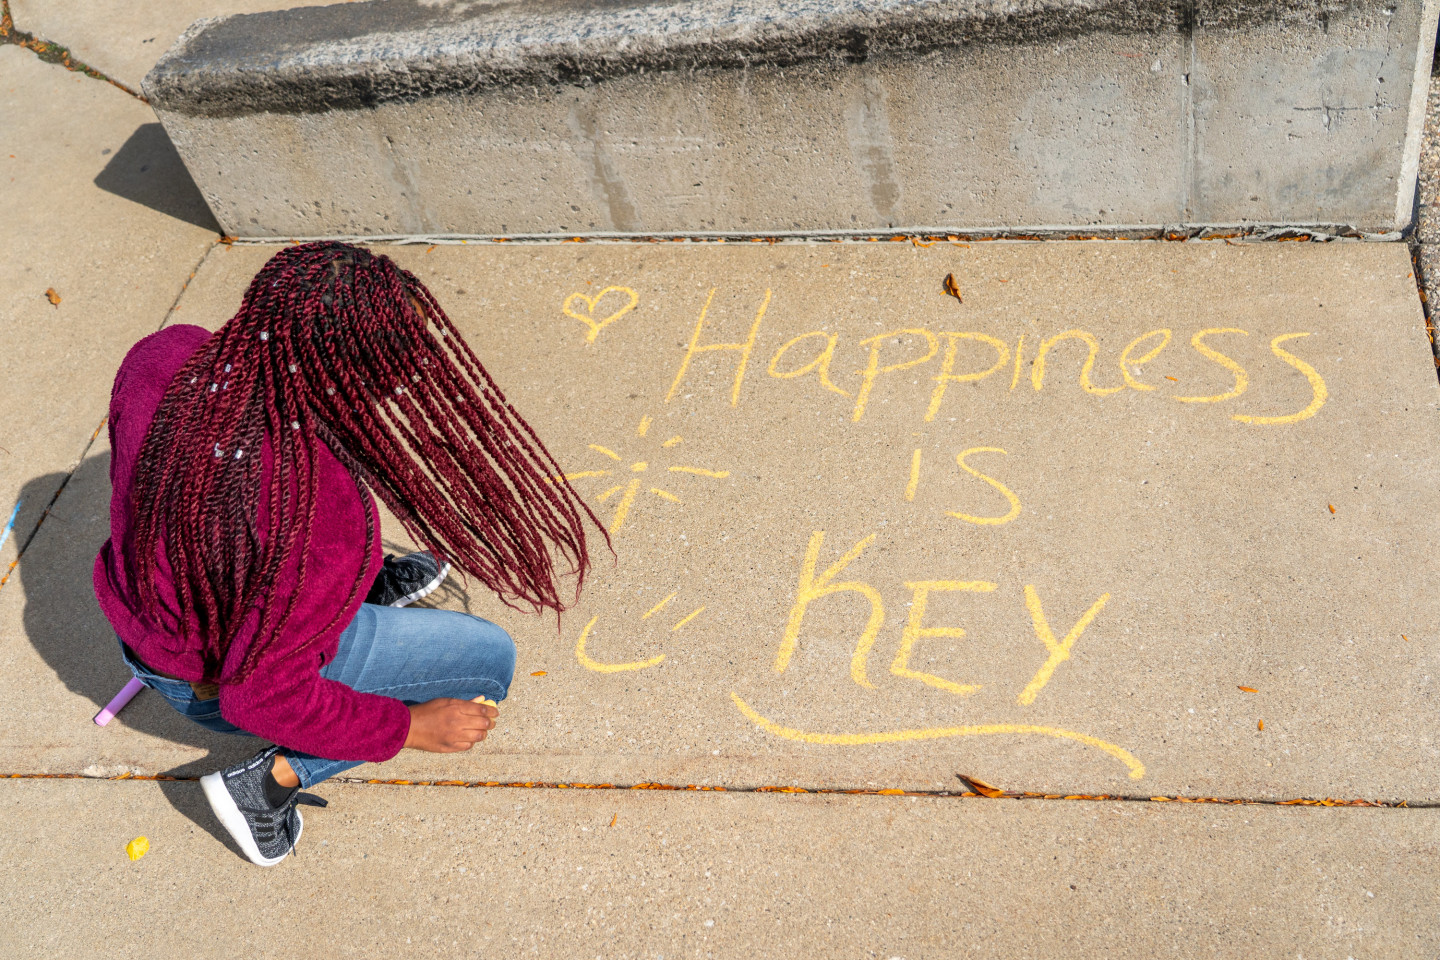 """A student writes """"Happiness is key"""" in chalk on the sidewalk."""